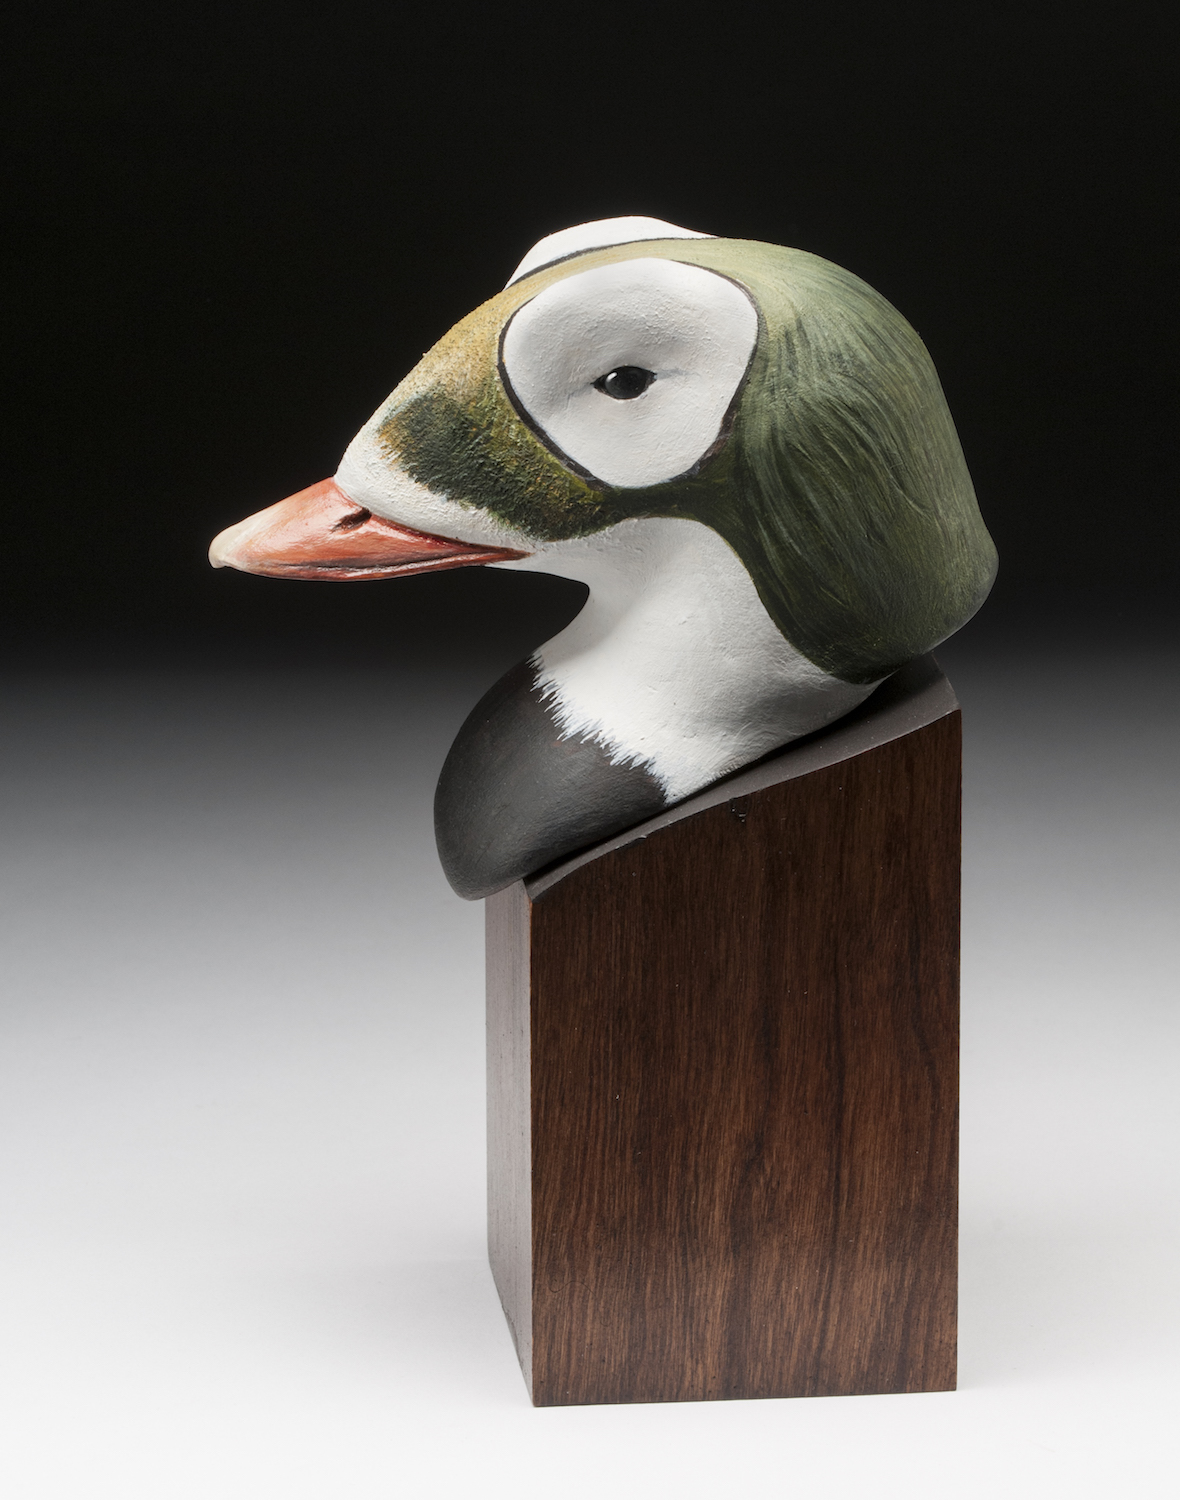 Richard Whittom Duck Head Purchase Award: Frank Macfarlane